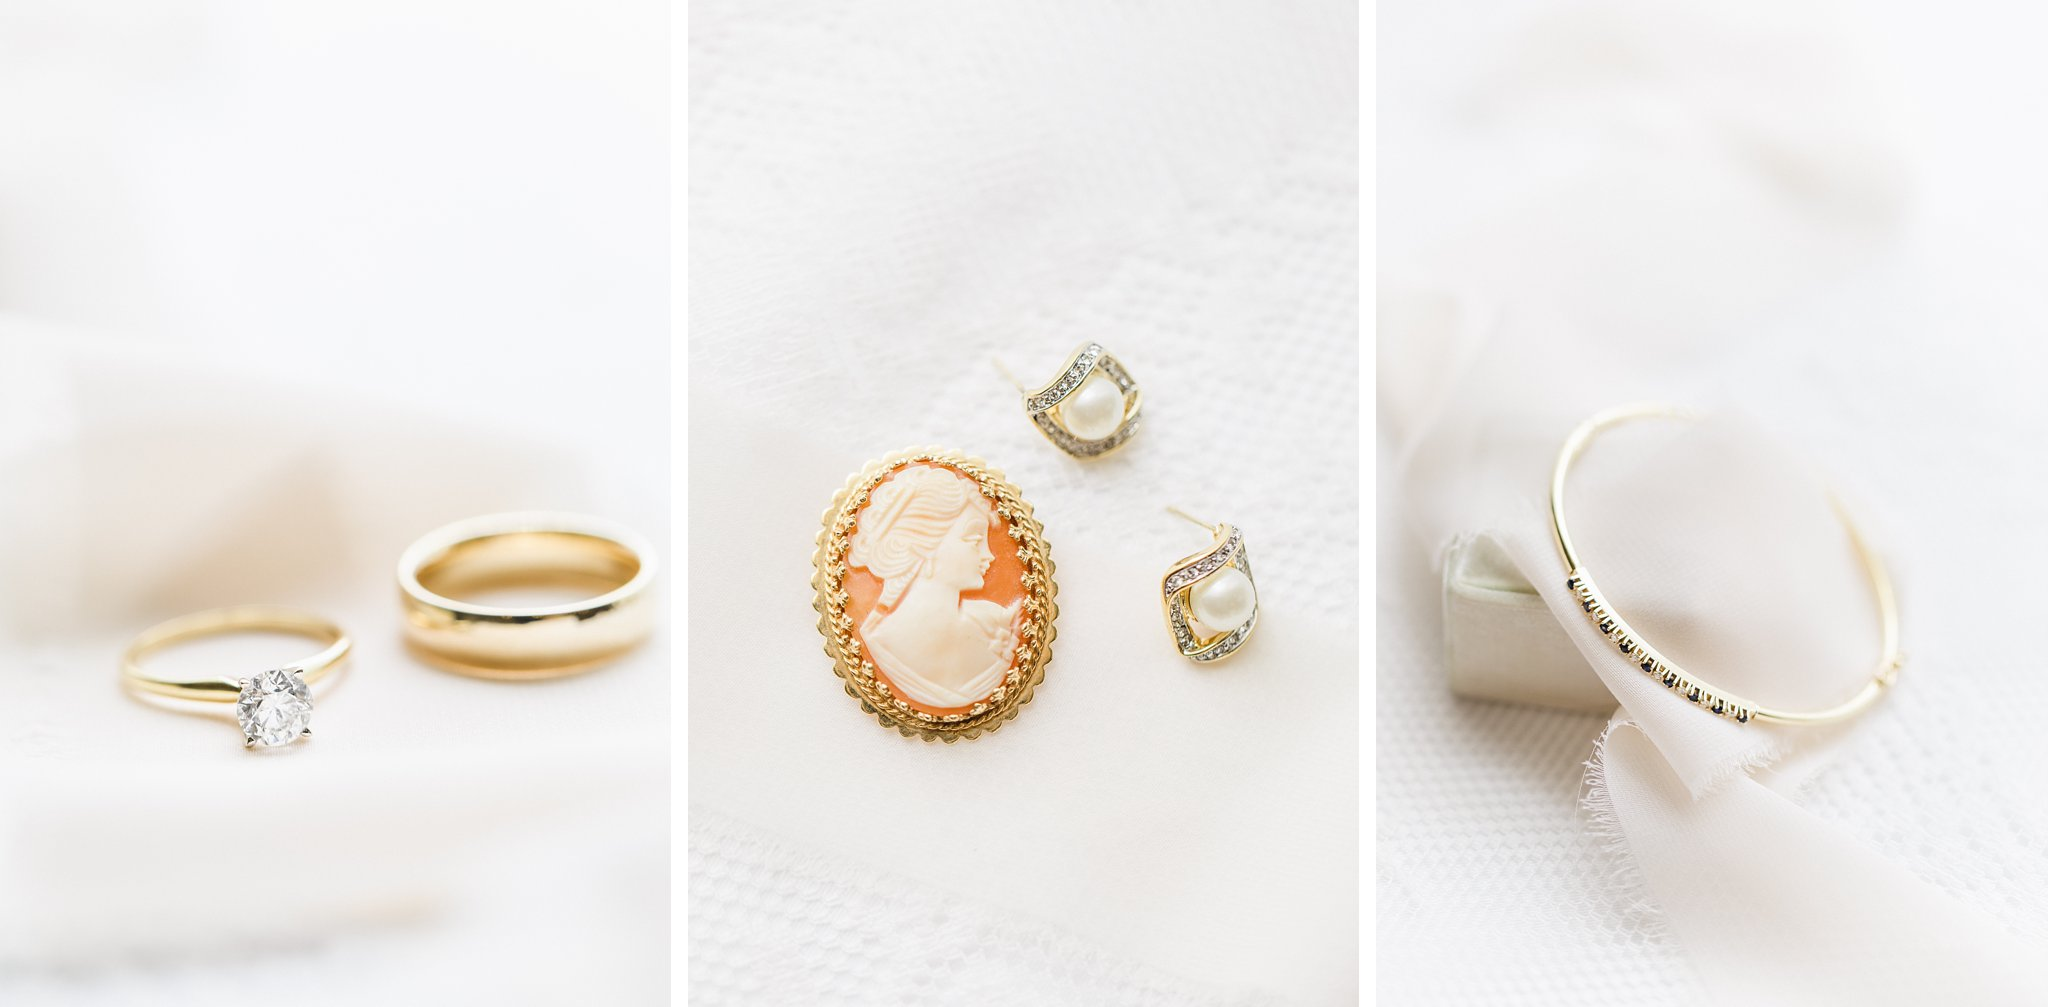 Heirloom bridal details married at Stonefields, Amy Pinder Photography